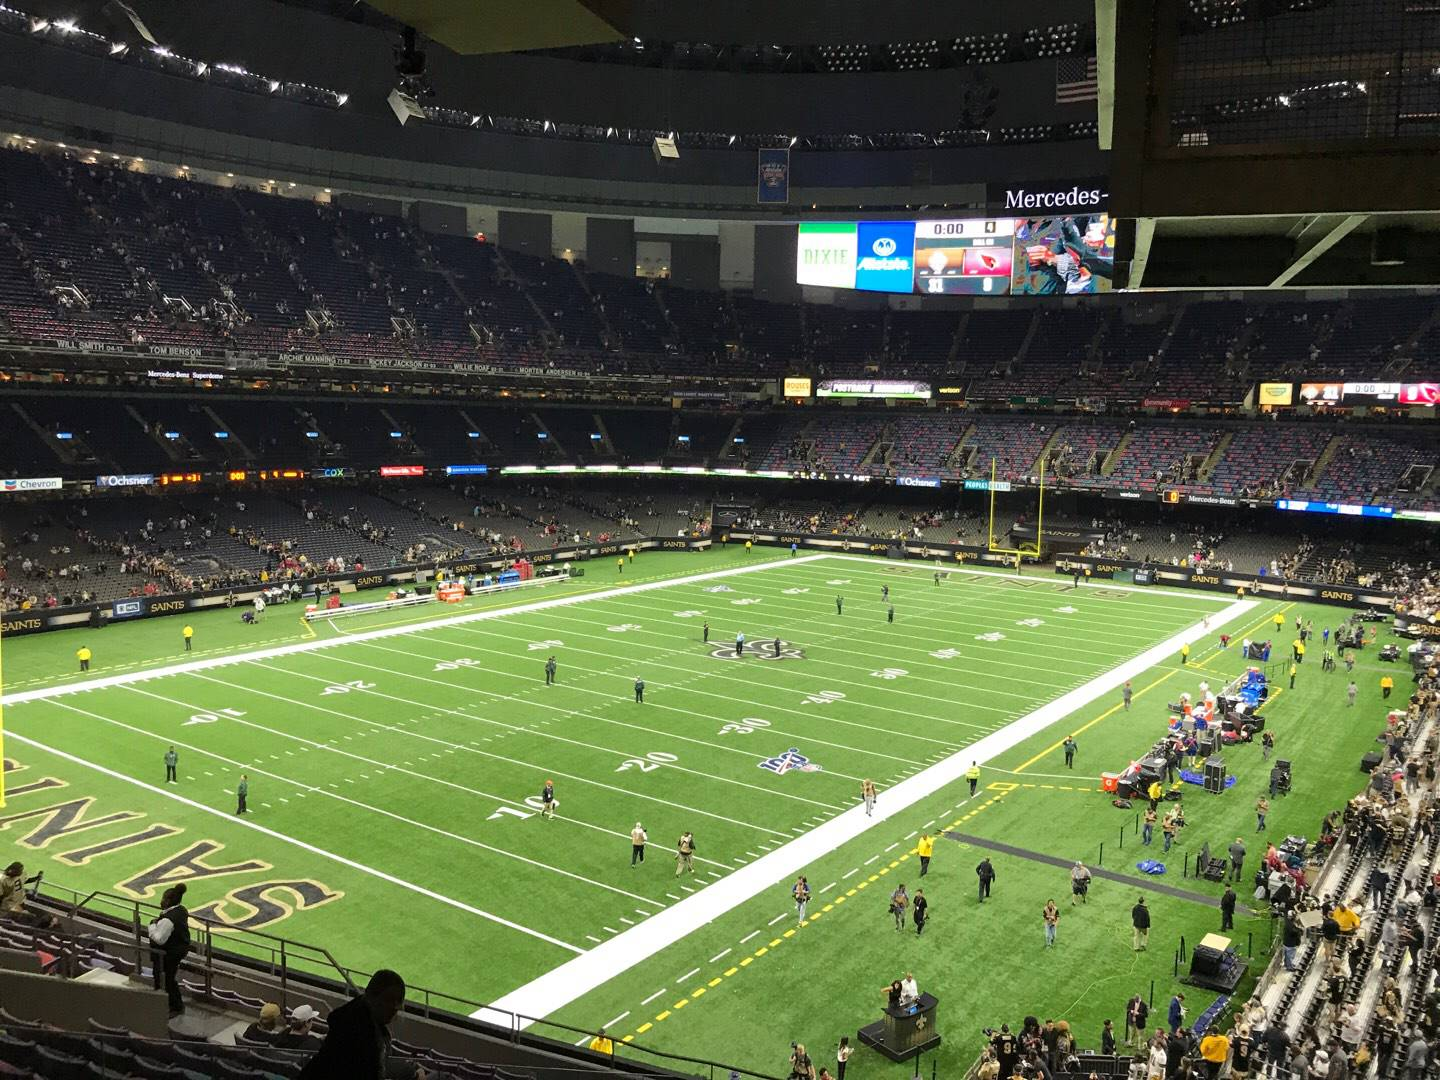 Mercedes-Benz Superdome Section 344 Row 17 Seat 4